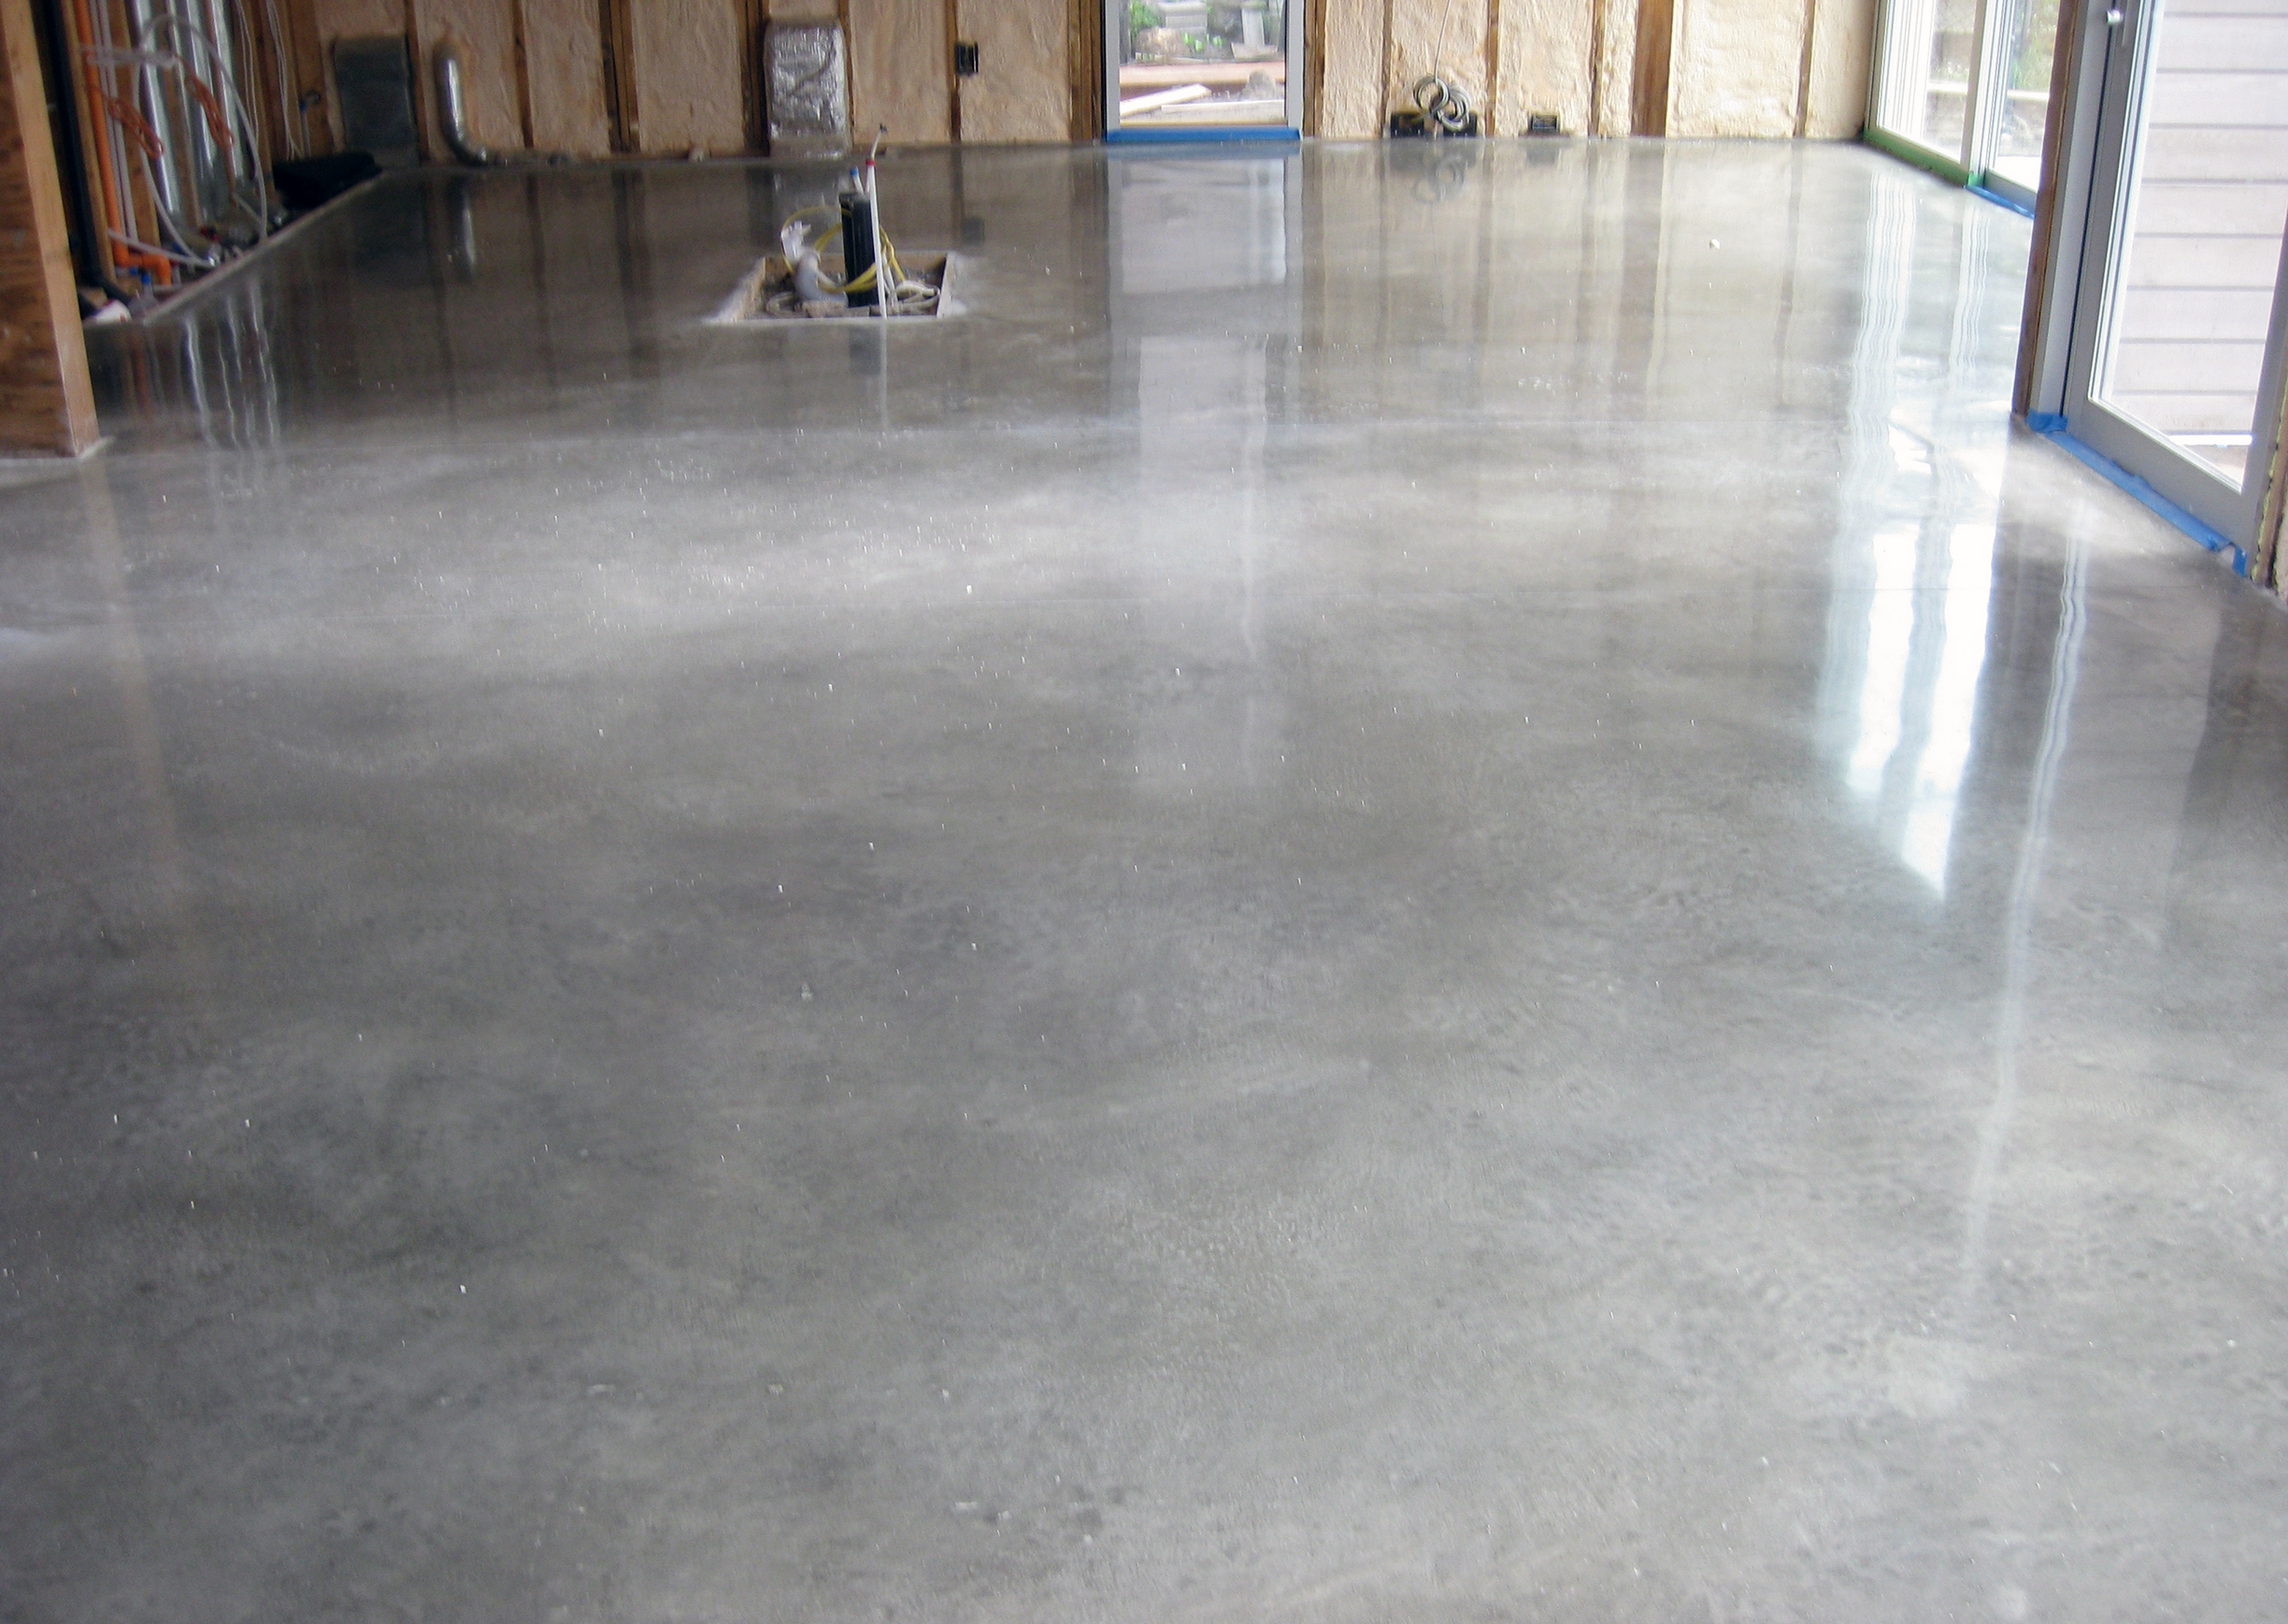 flooring concrete concrete floors flooring how to and benefits the carpet grippers on concrete UWNPJBF